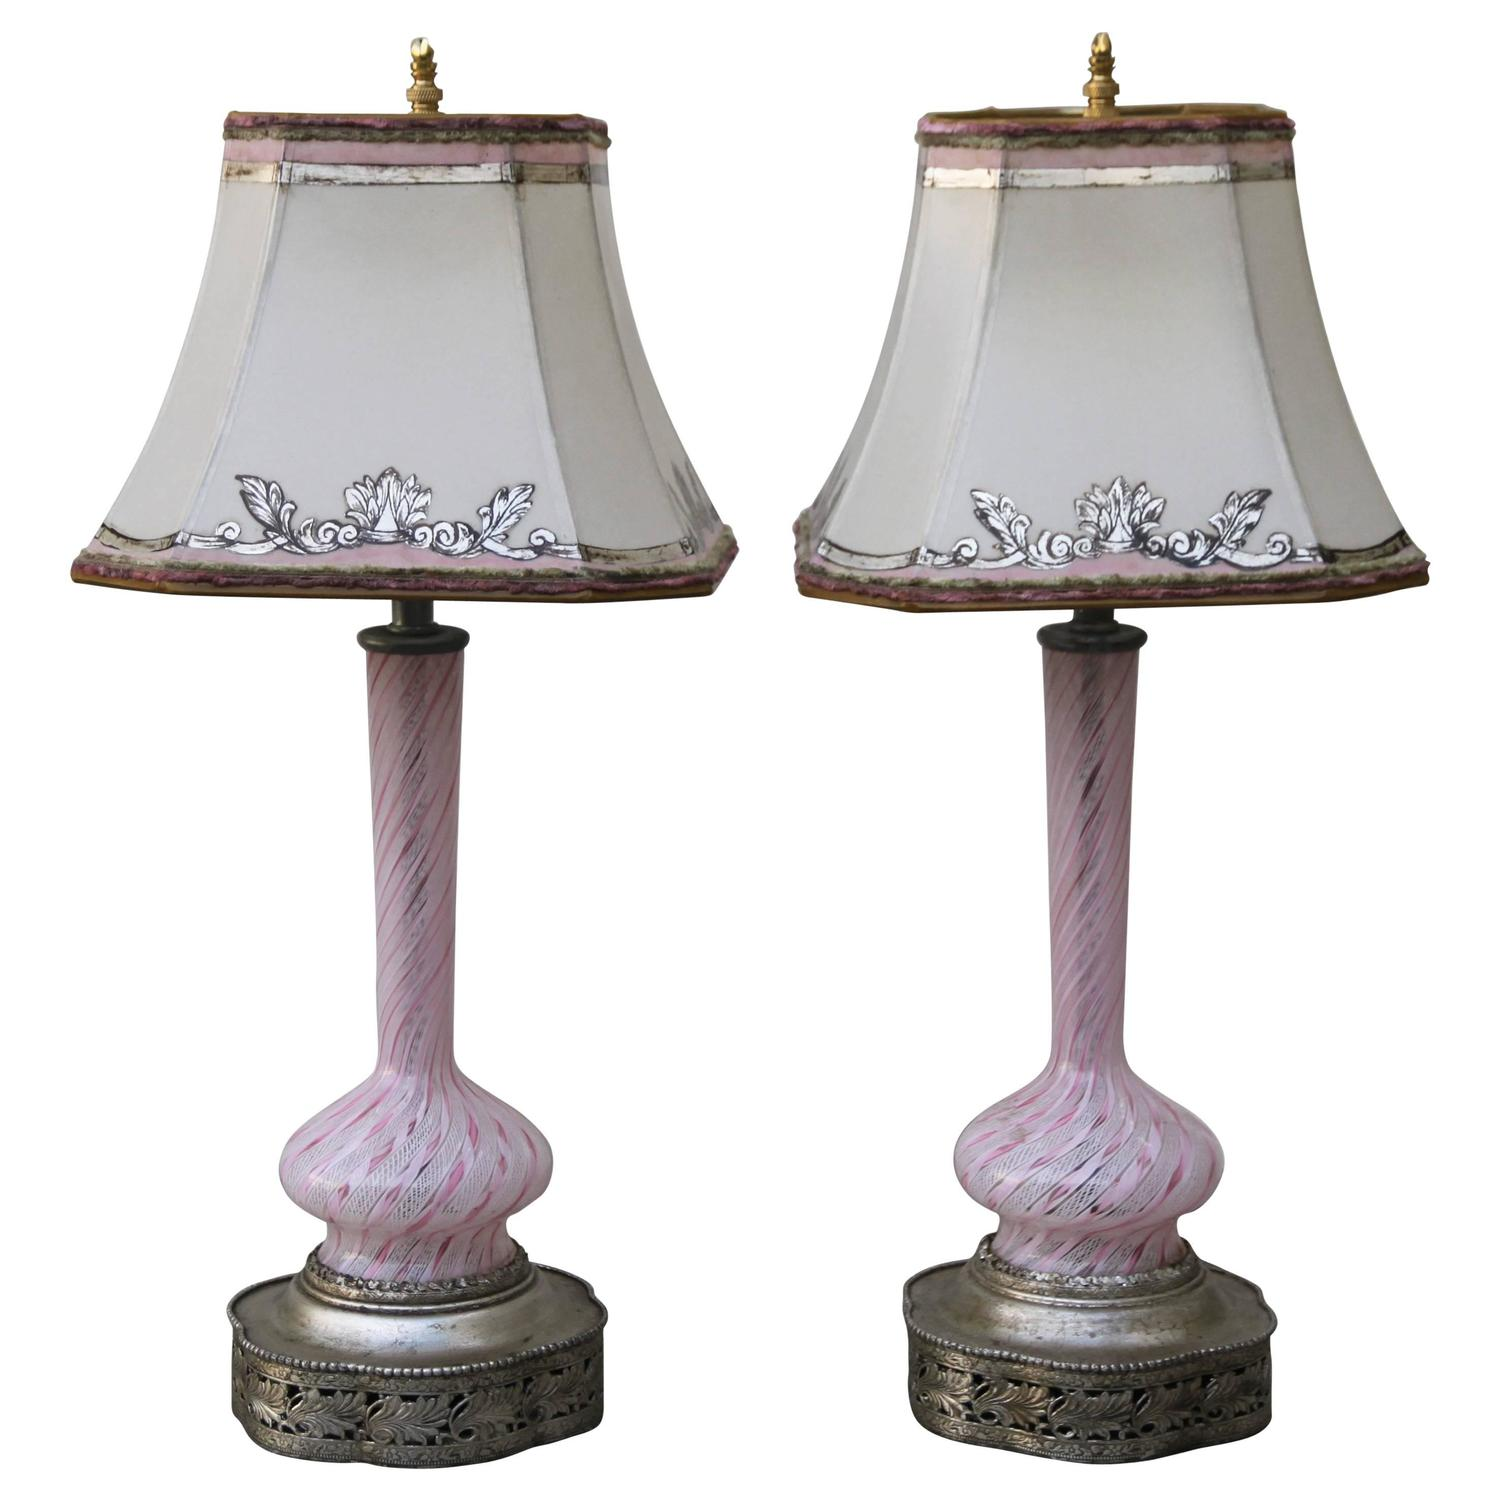 murano glass lamps w parchment shades melissa levinson antiques. Black Bedroom Furniture Sets. Home Design Ideas